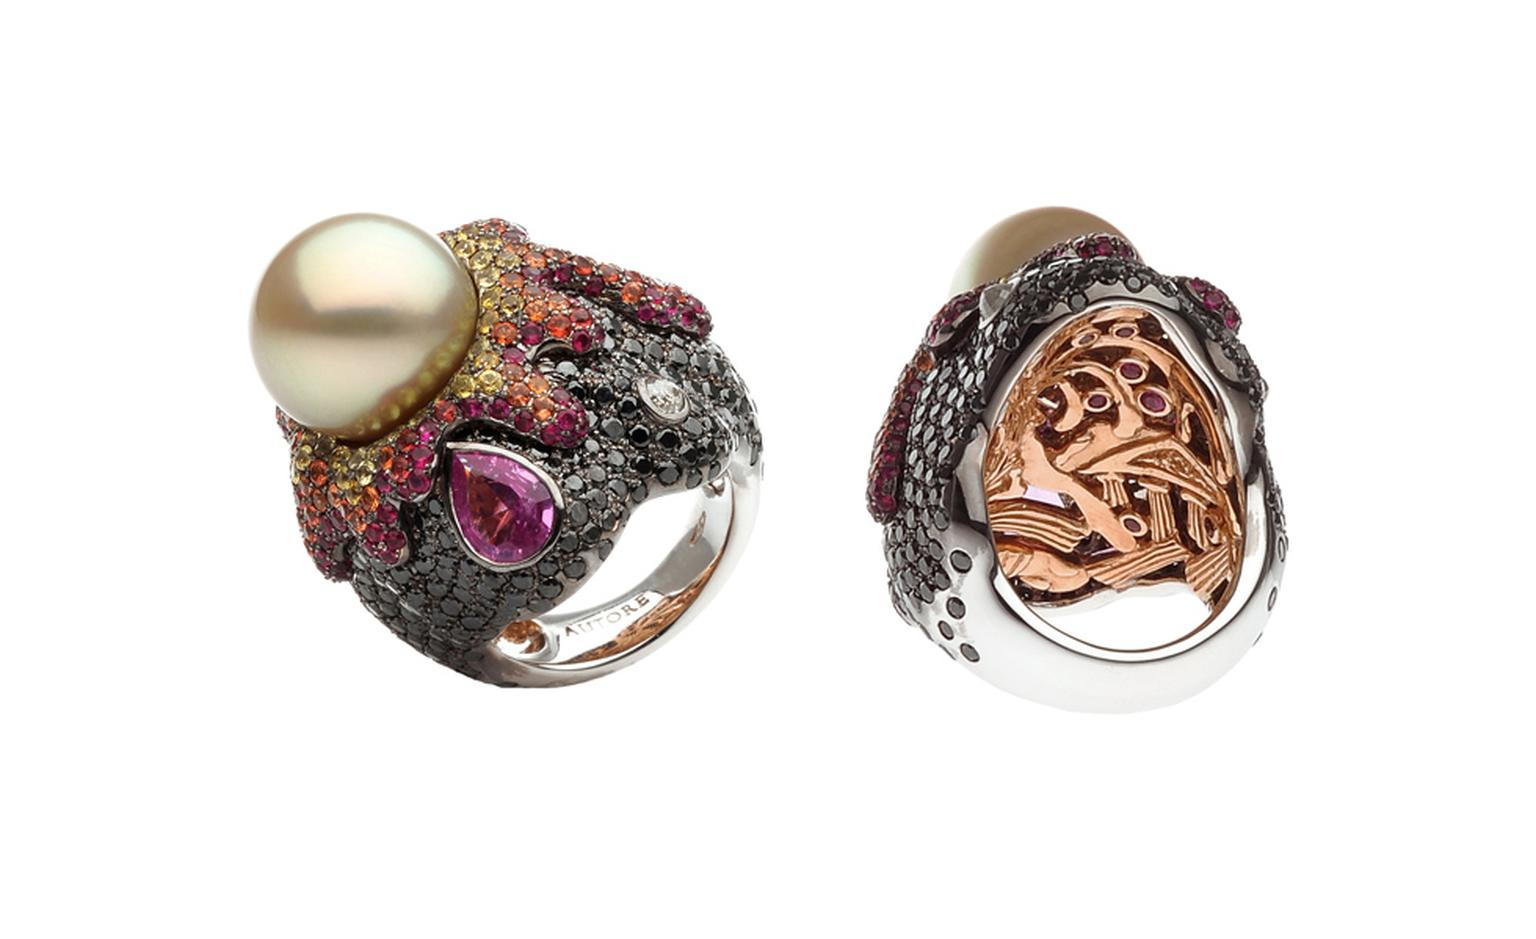 Autore, Fire & Ice Vesuvio Ring in white and rose gold, with South Sea pearl, rubies, pink, orange and yellow sapphires, black and white diamonds. $60,000 AUD